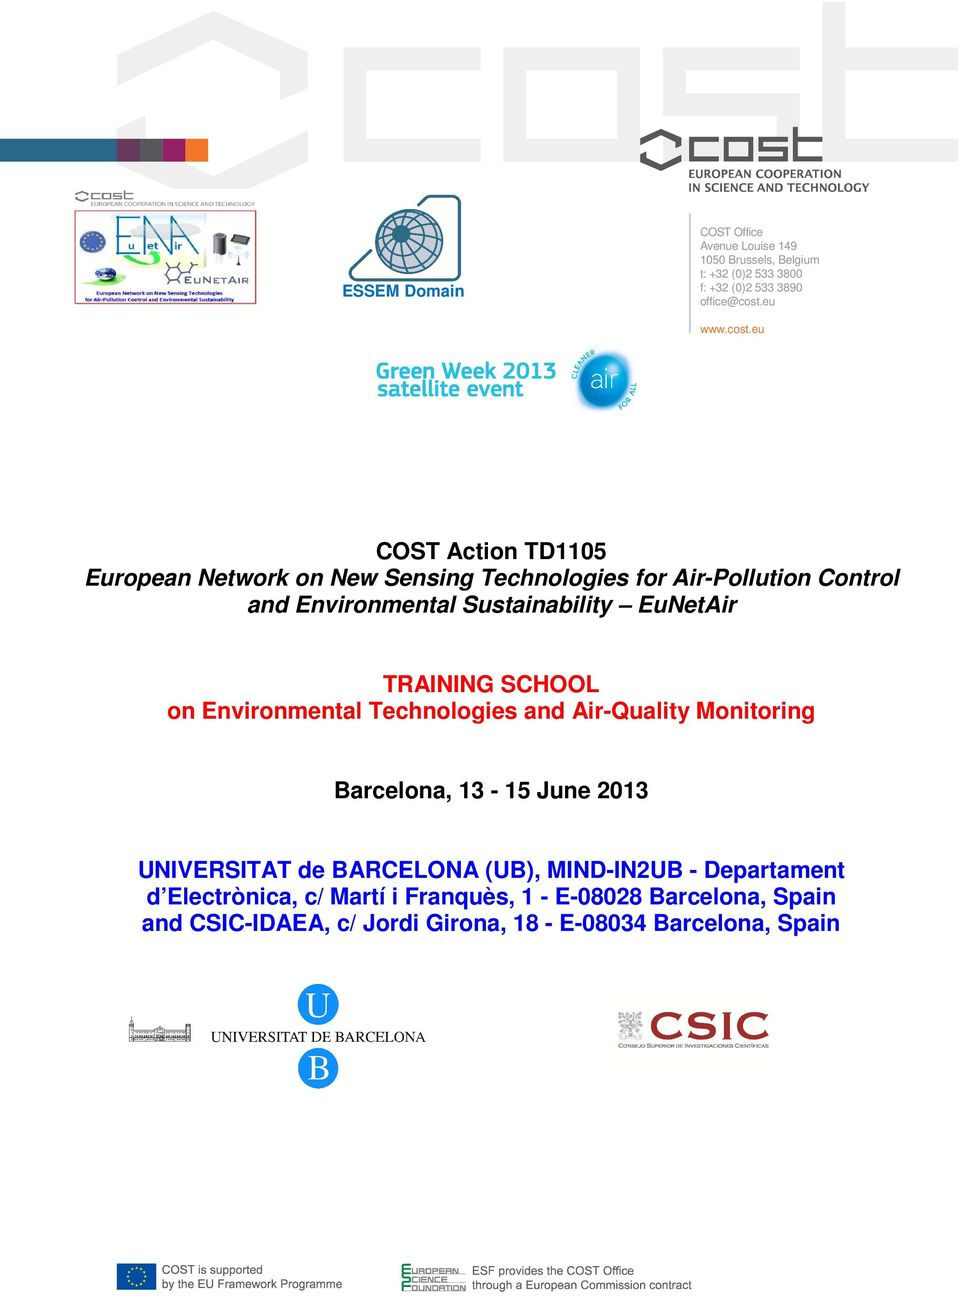 eu COST Action TD1105 European Network on New Sensing Technologies for Air-Pollution Control and Environmental Sustainability EuNetAir